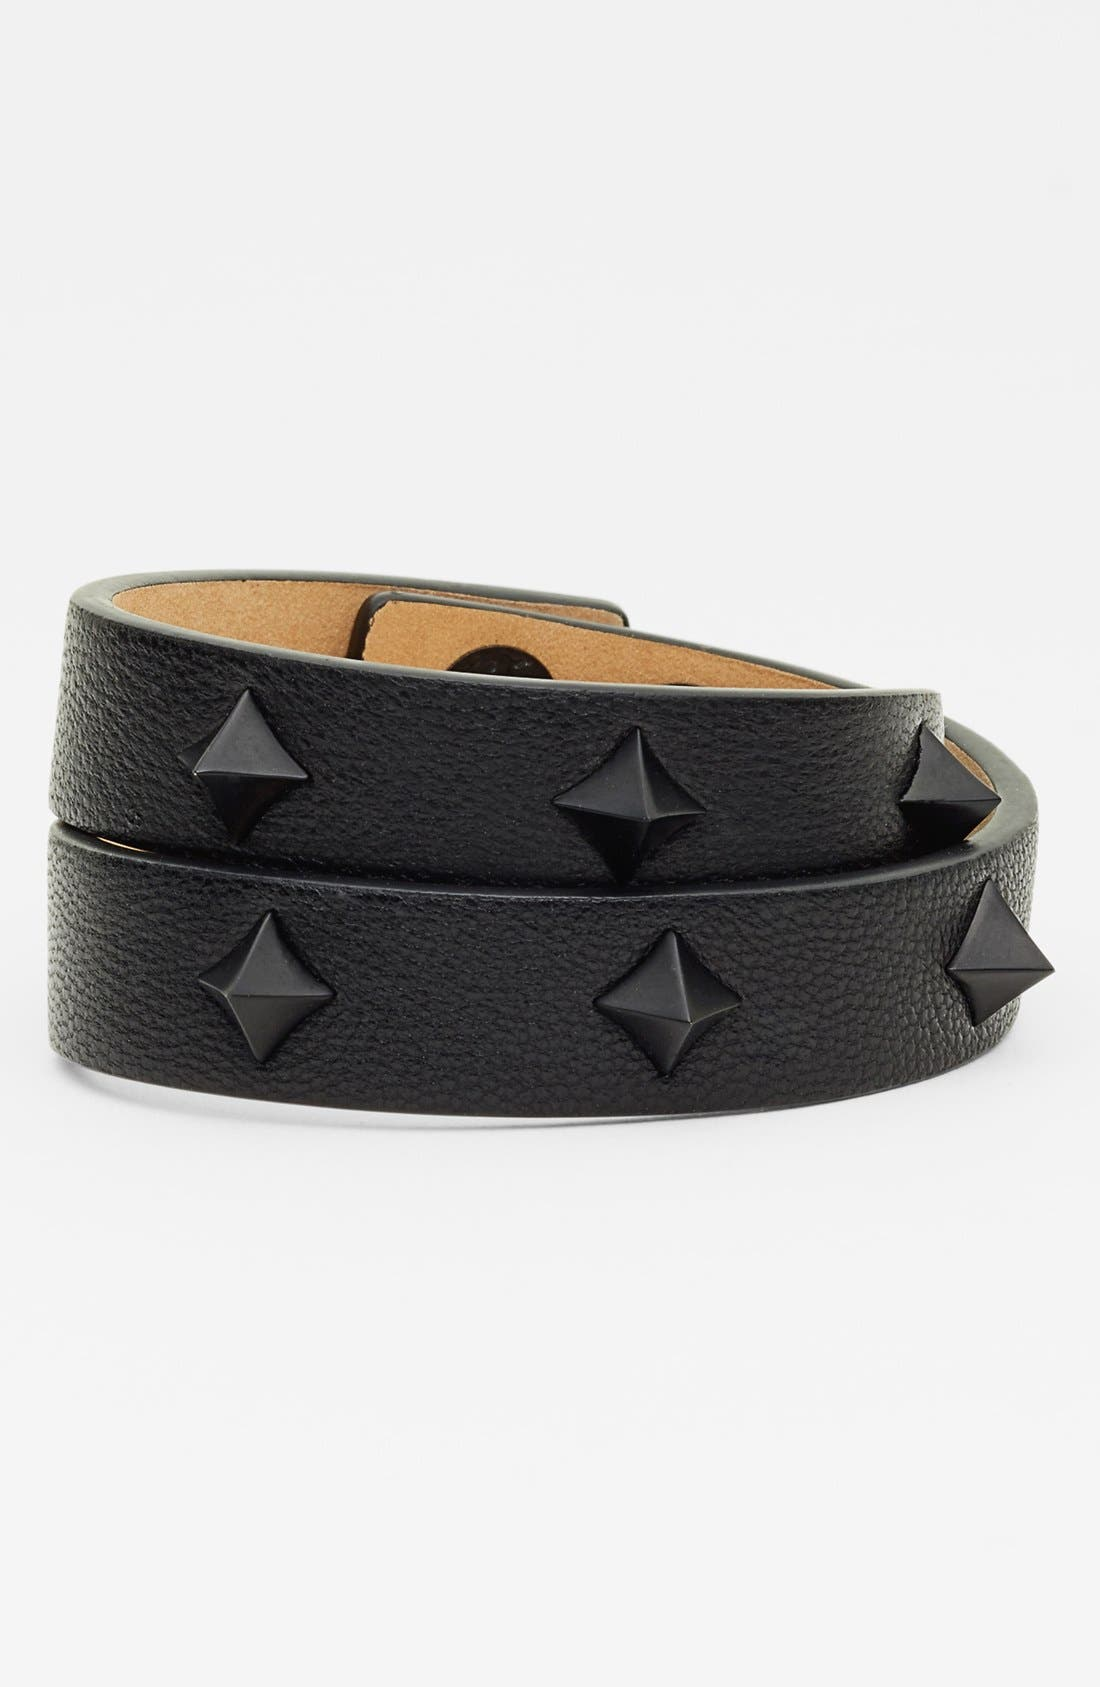 Alternate Image 1 Selected - Vince Camuto 'Tour of Duty' Studded Leather Wrap Bracelet